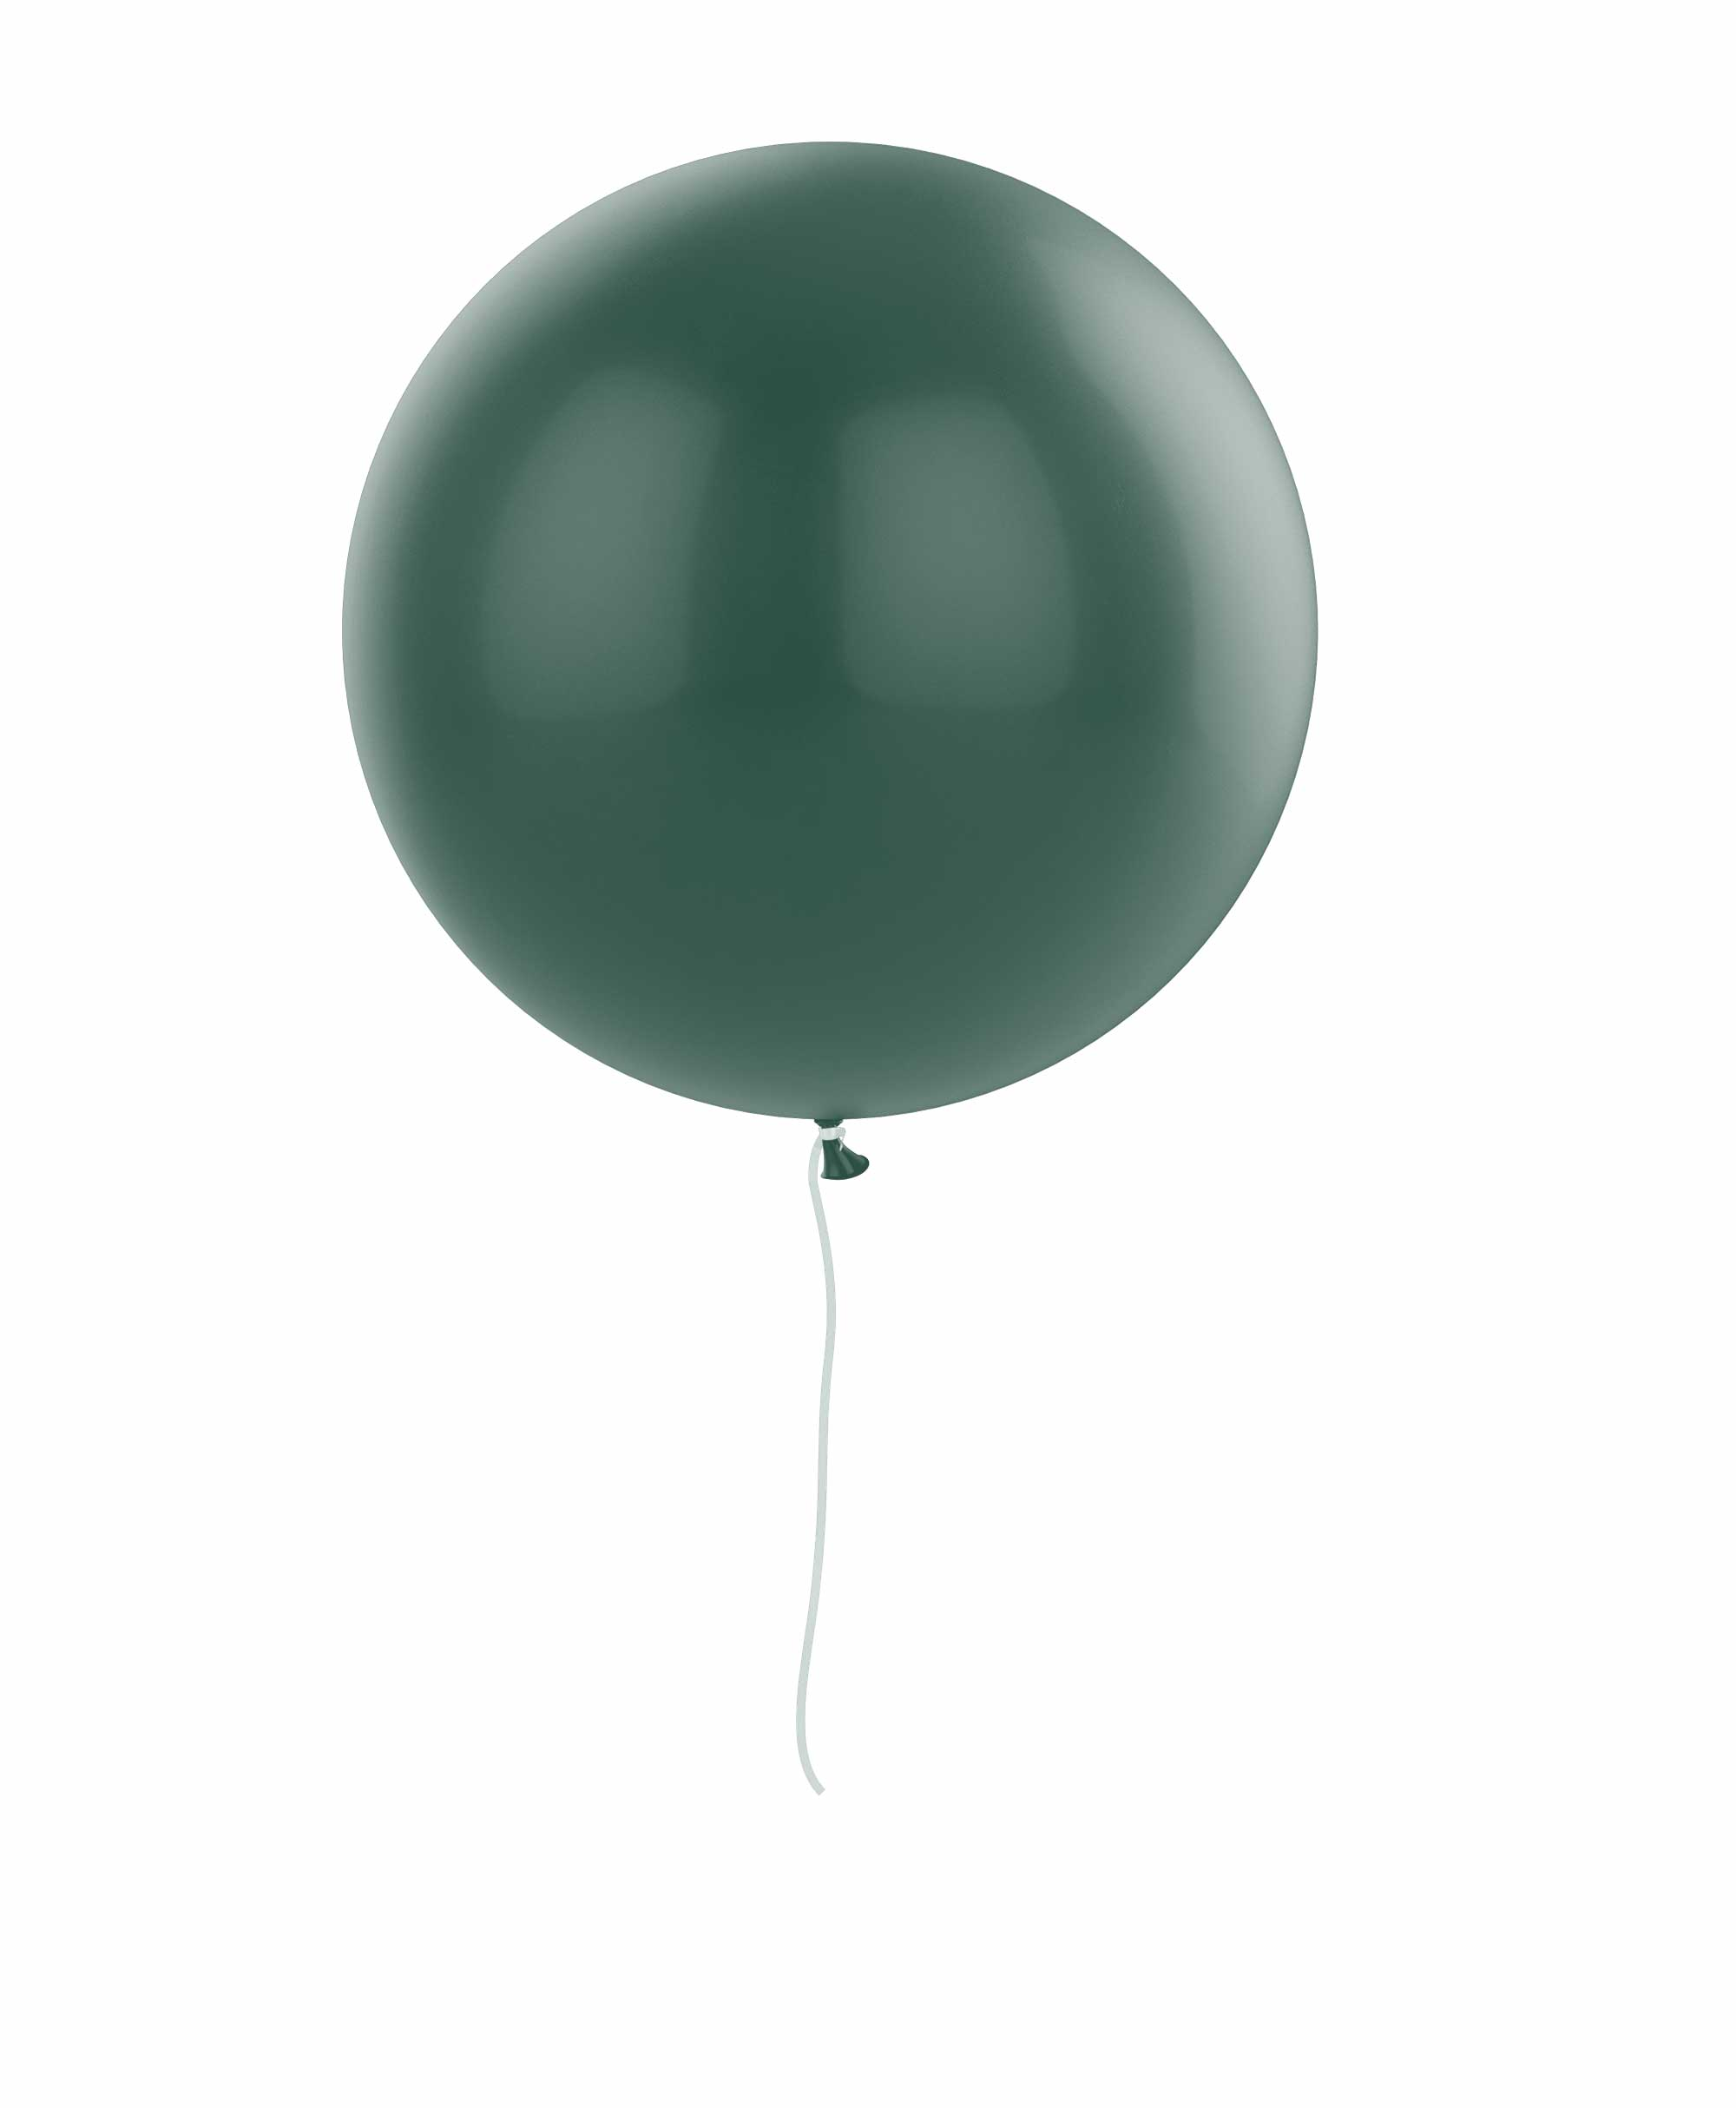 "Dark green balloon 36"" - Gum nut Theme"